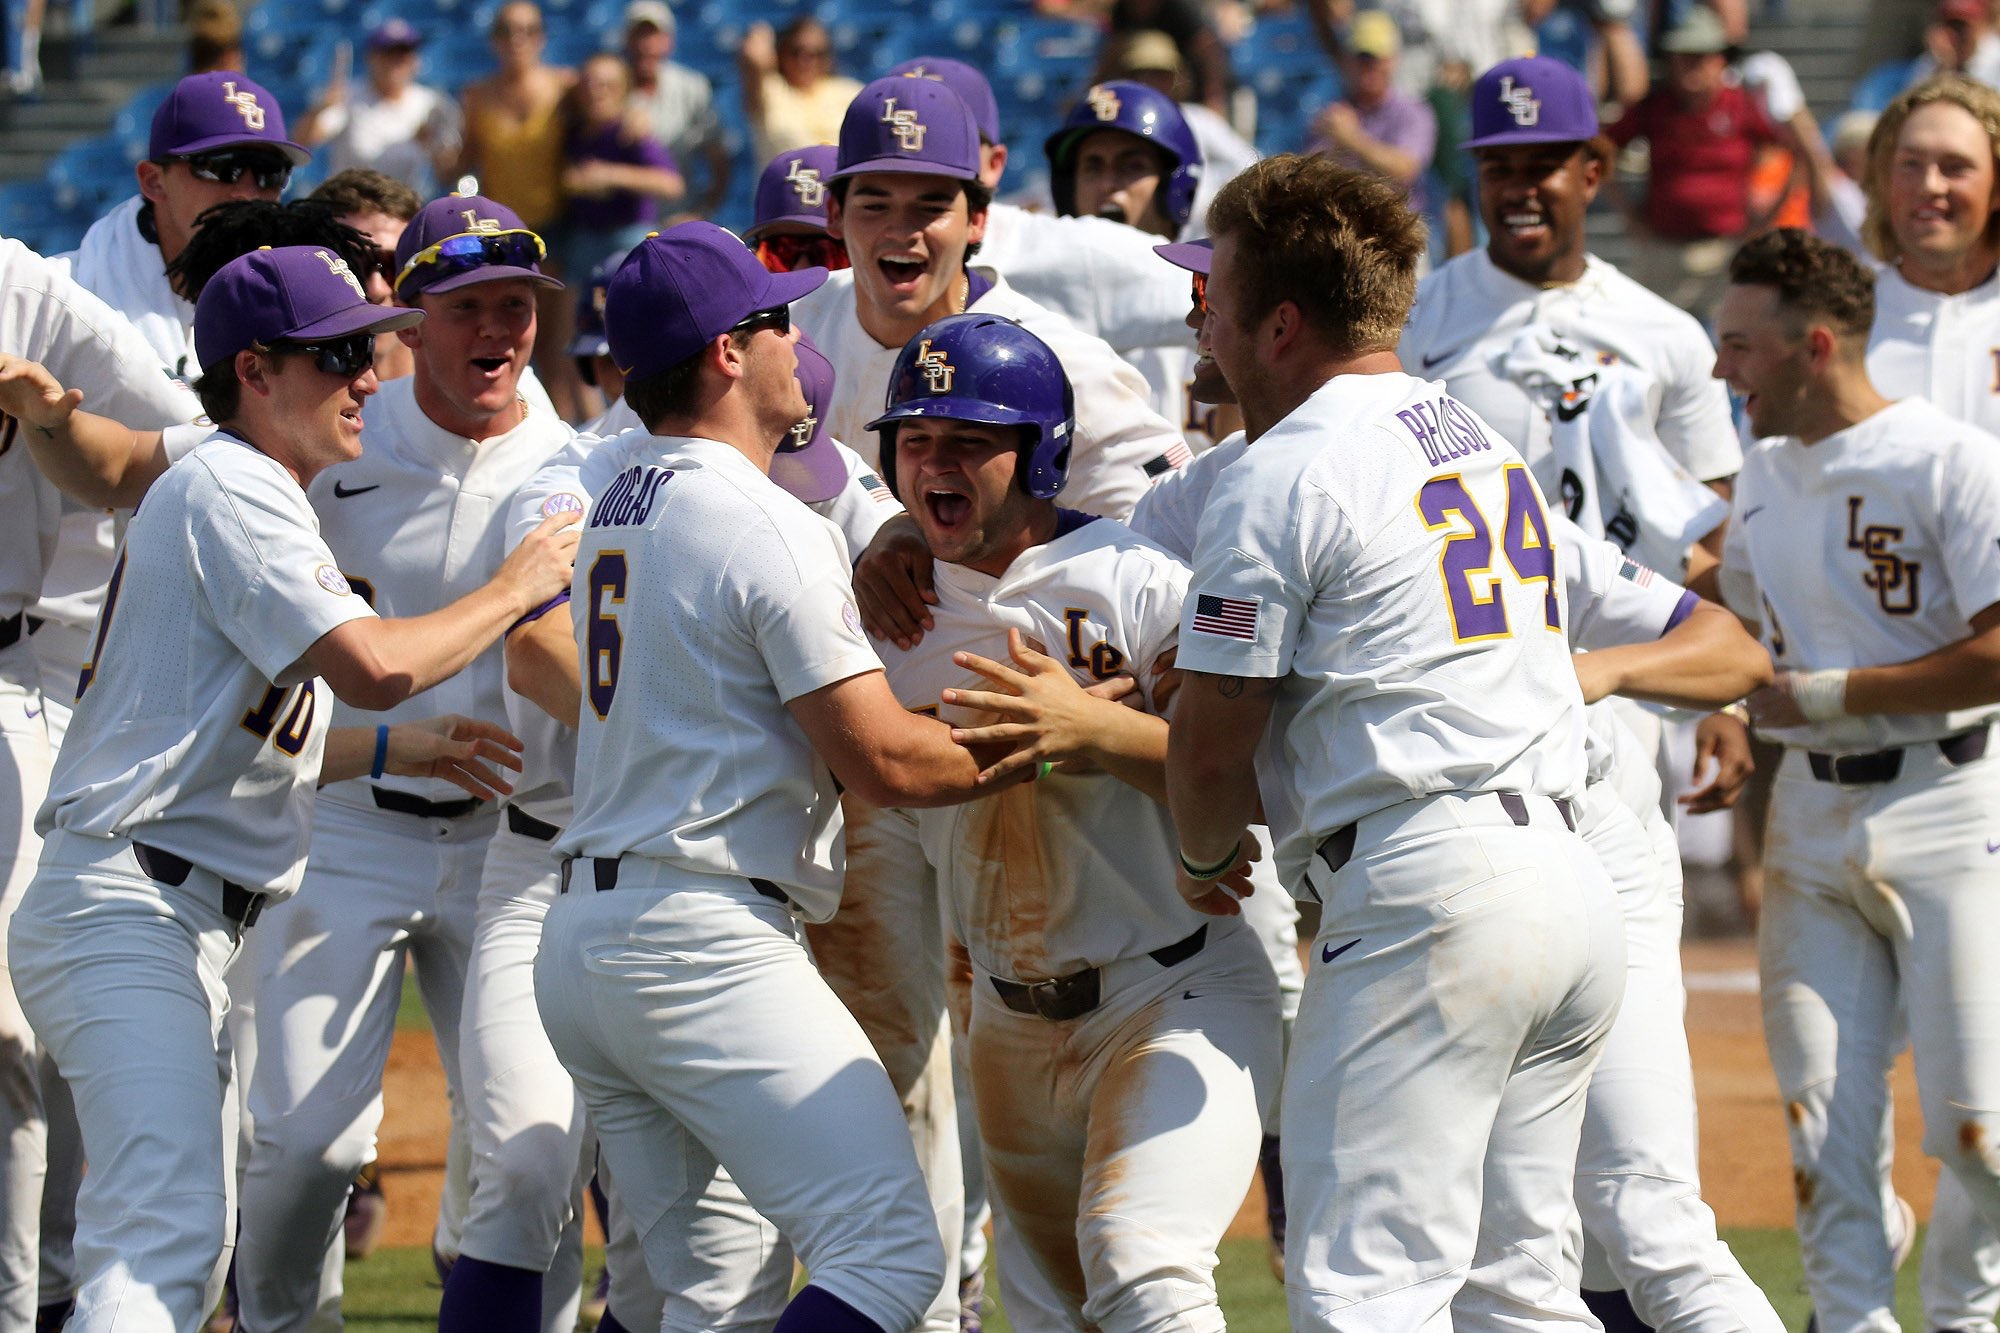 LSU beats Auburn behind bizarre walk-off finish